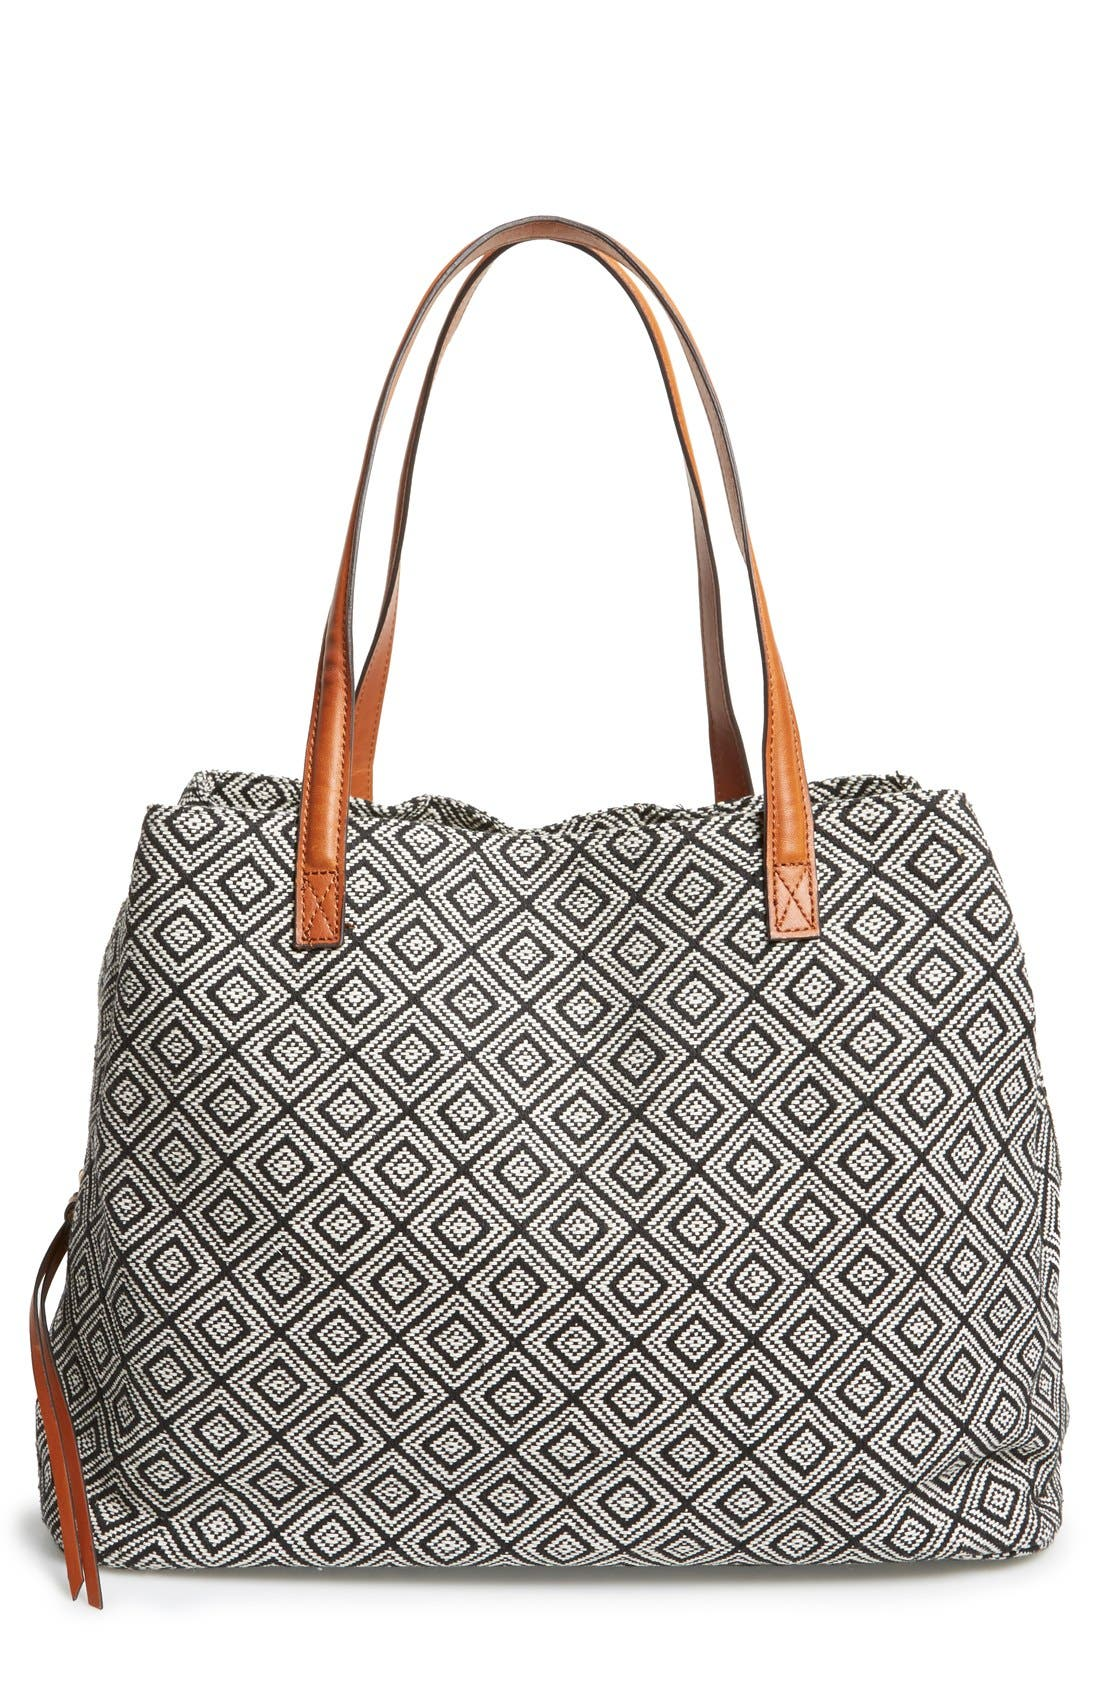 Sole Society 'Oversize Millie' Tote